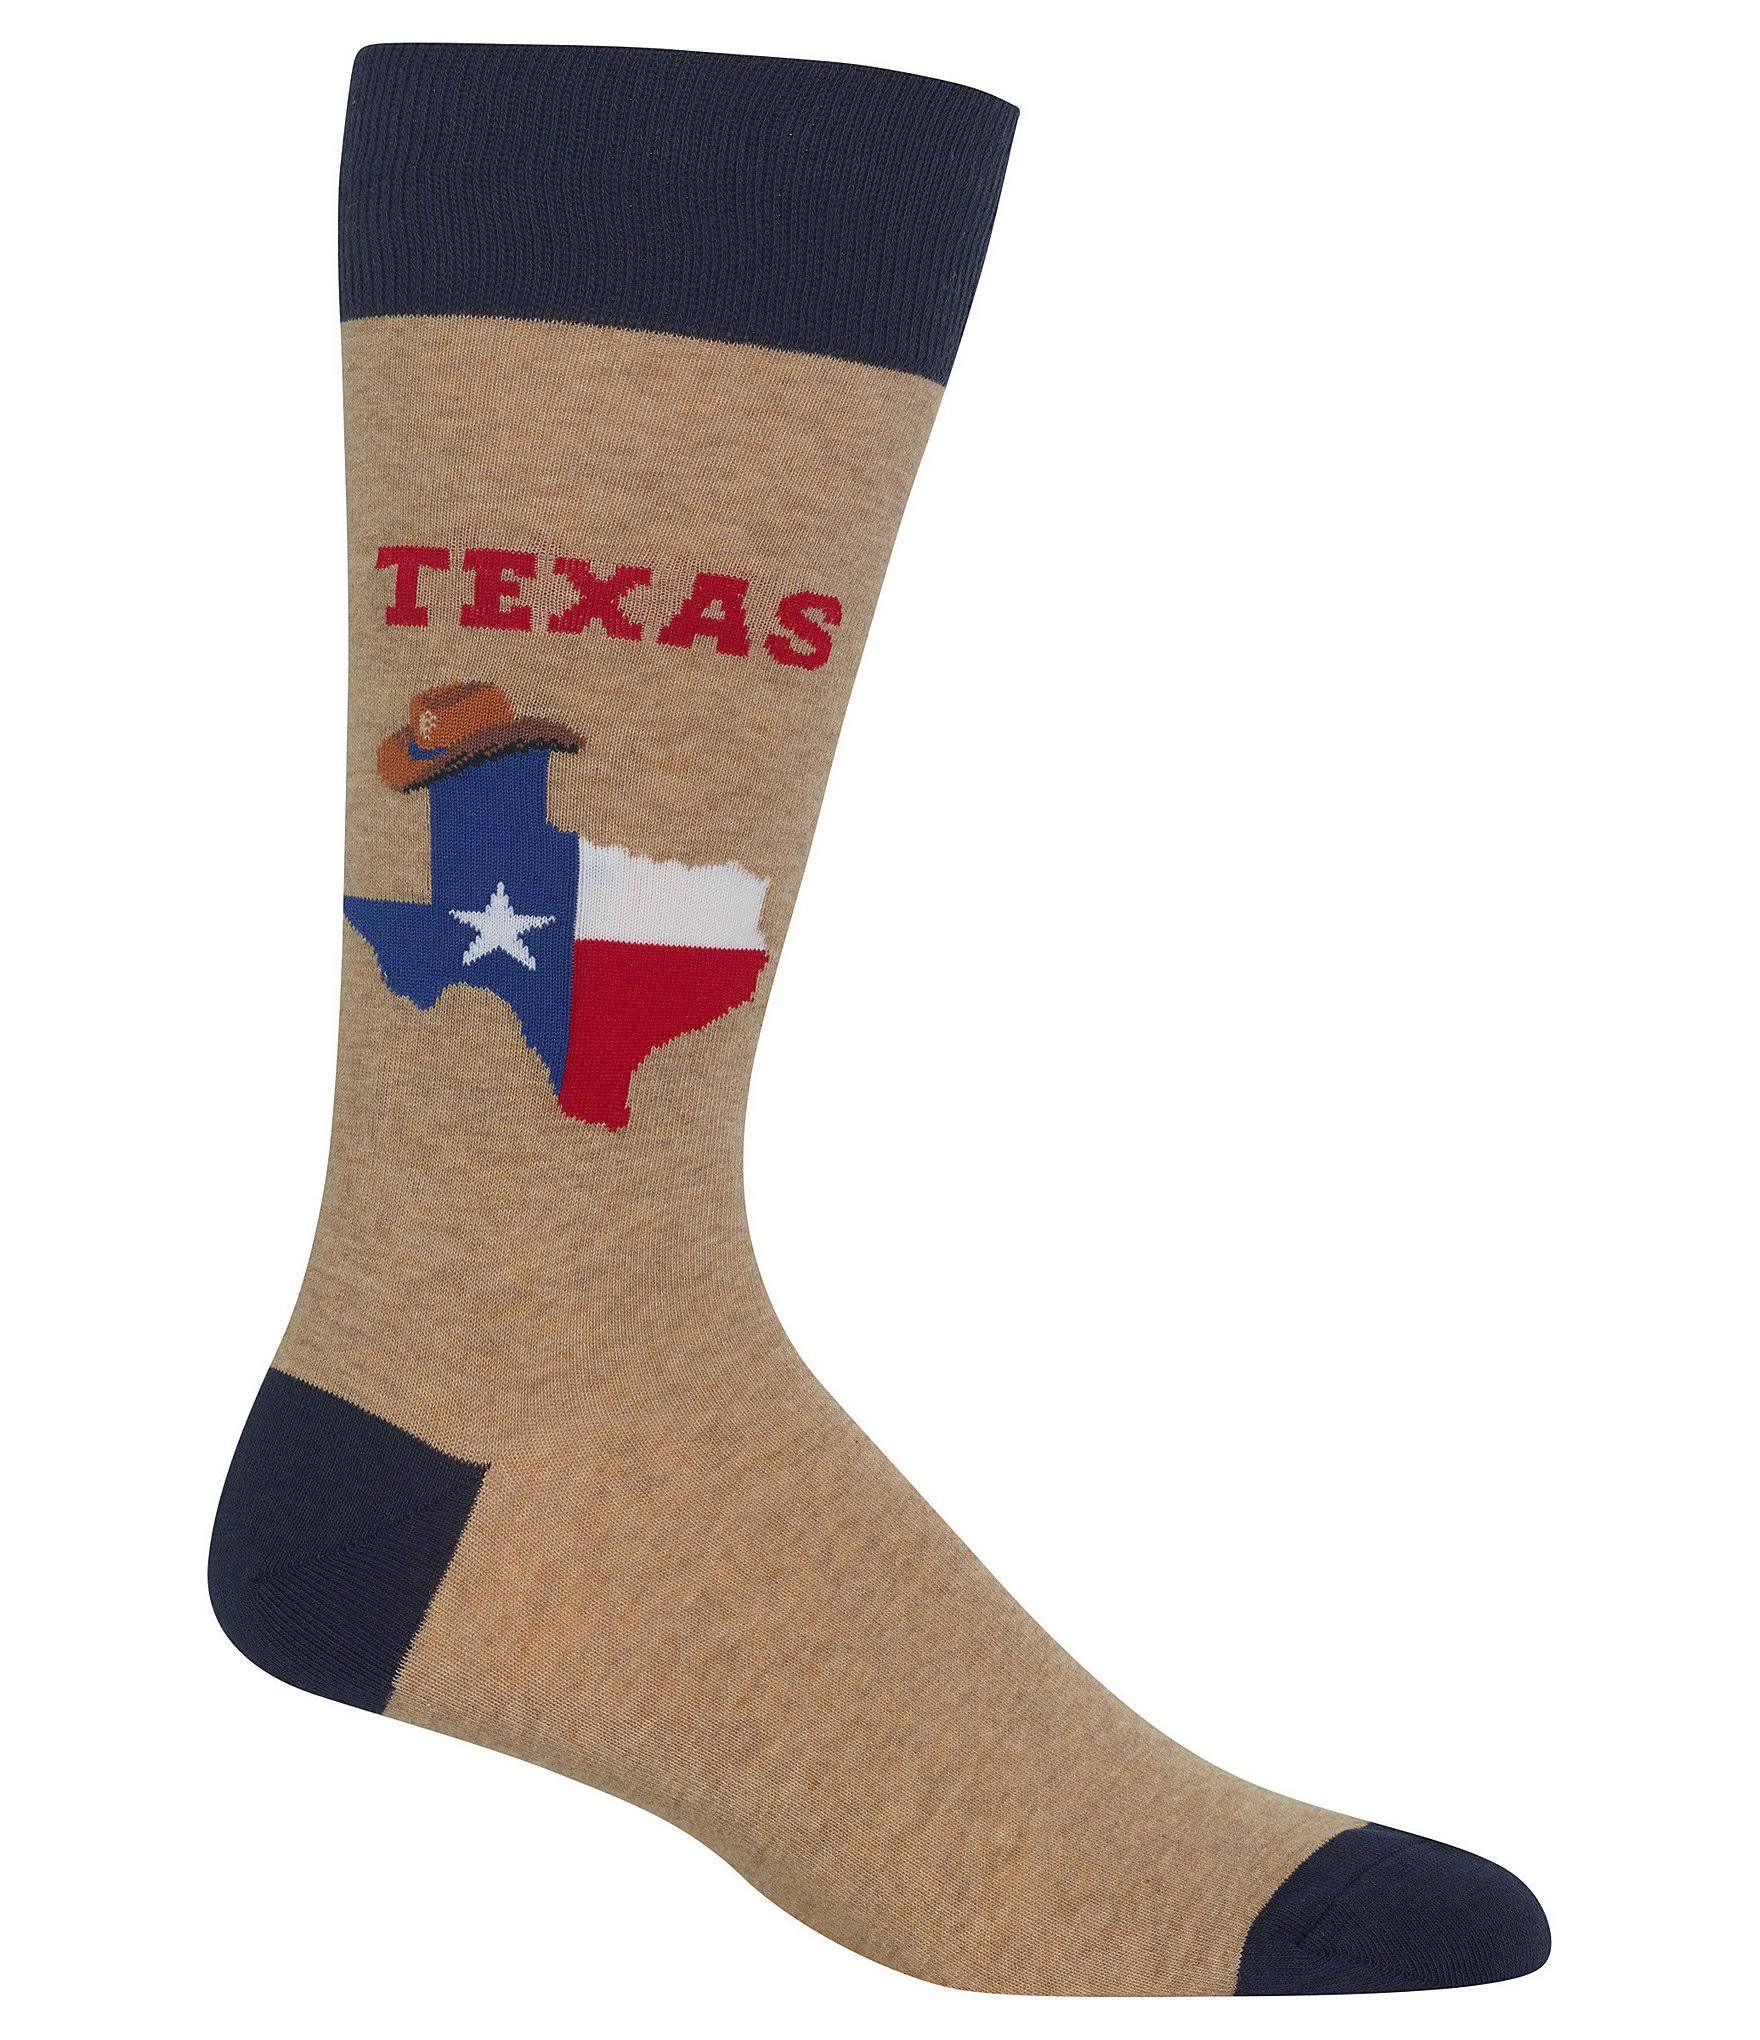 Hot Sox Men's Texas Socks - Small